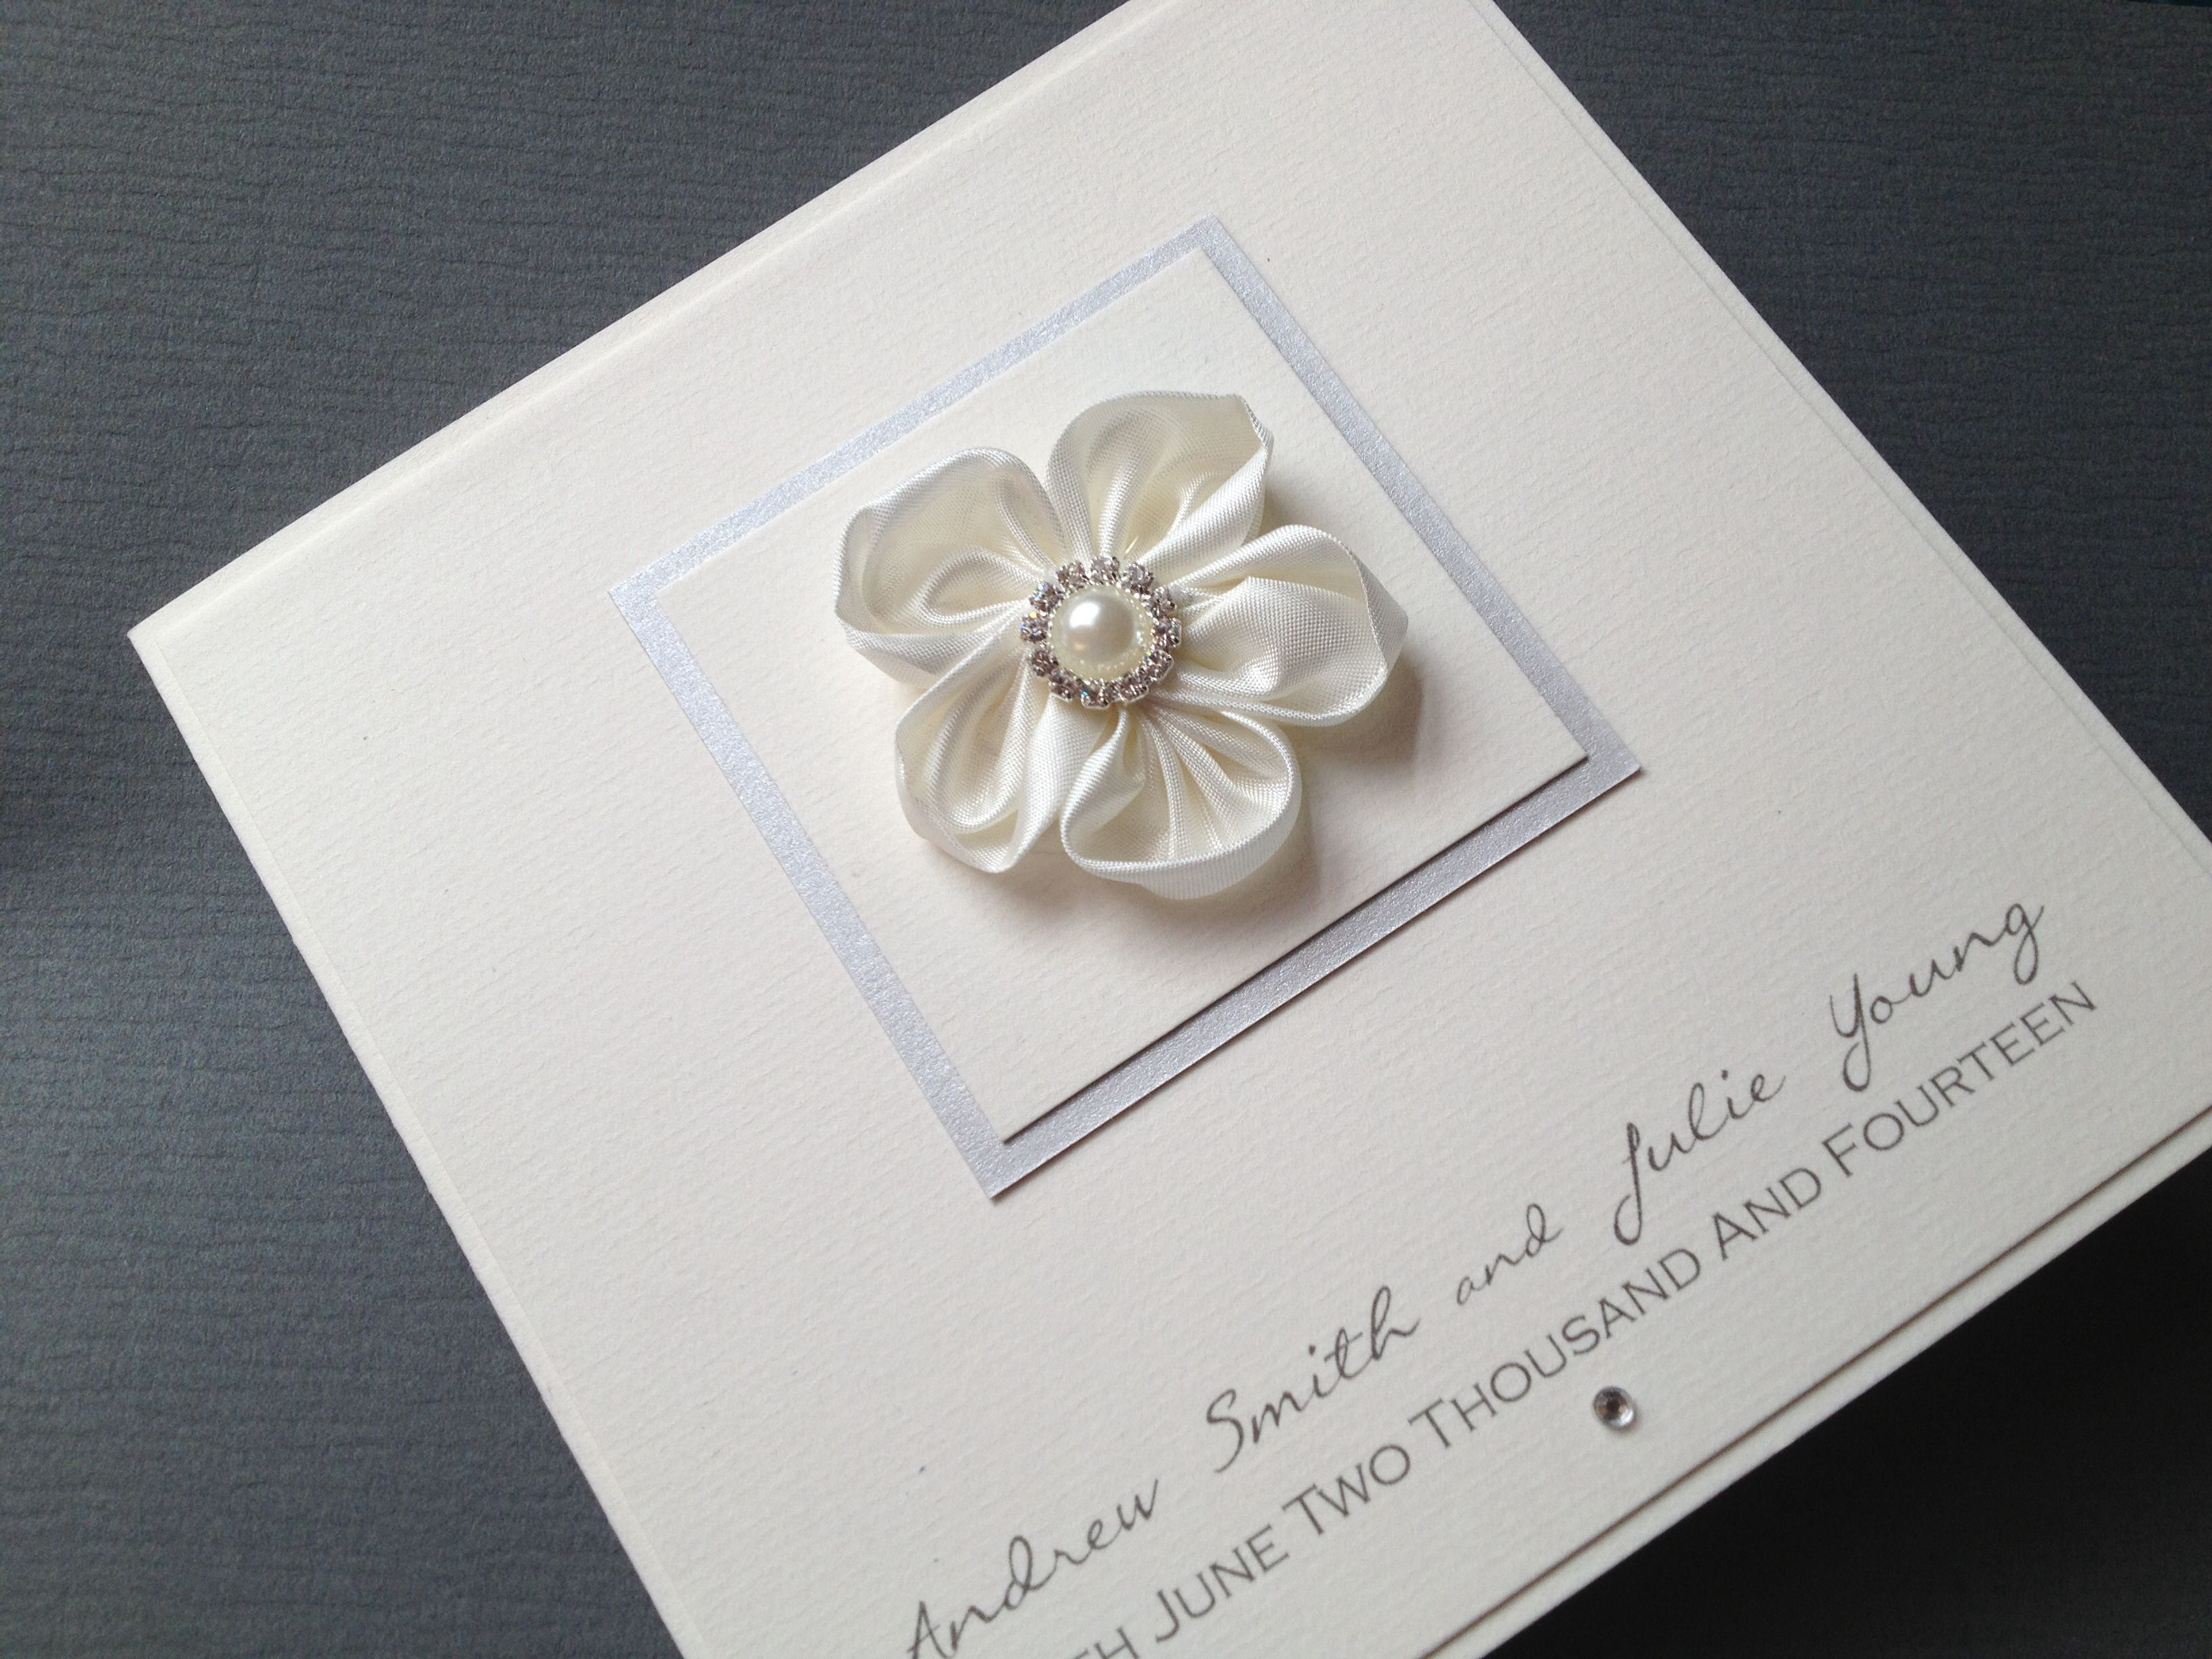 Bellis wedding invitation | Invitations | Pinterest | Weddings